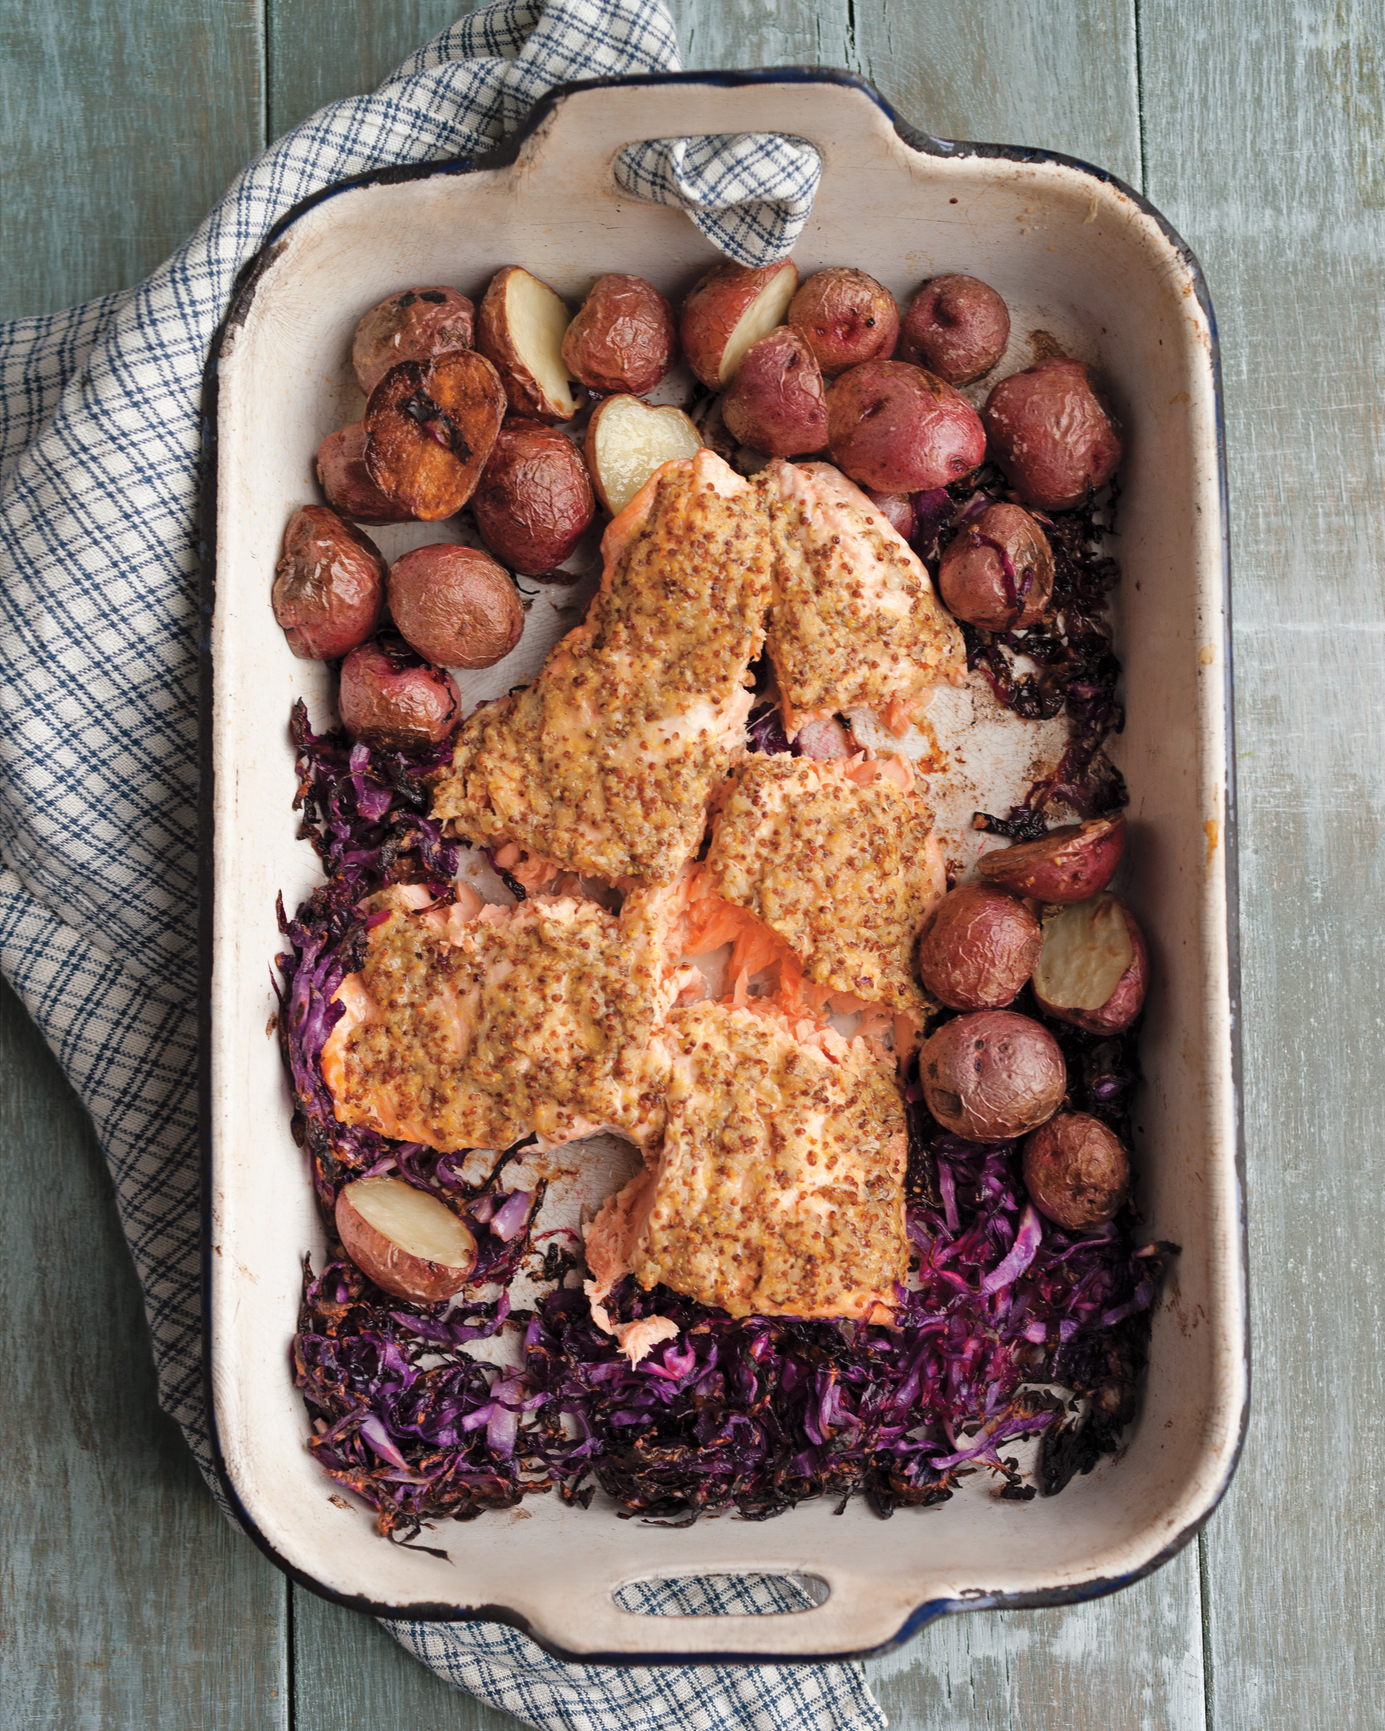 Salmon, Red Cabbage, and New Potatoes